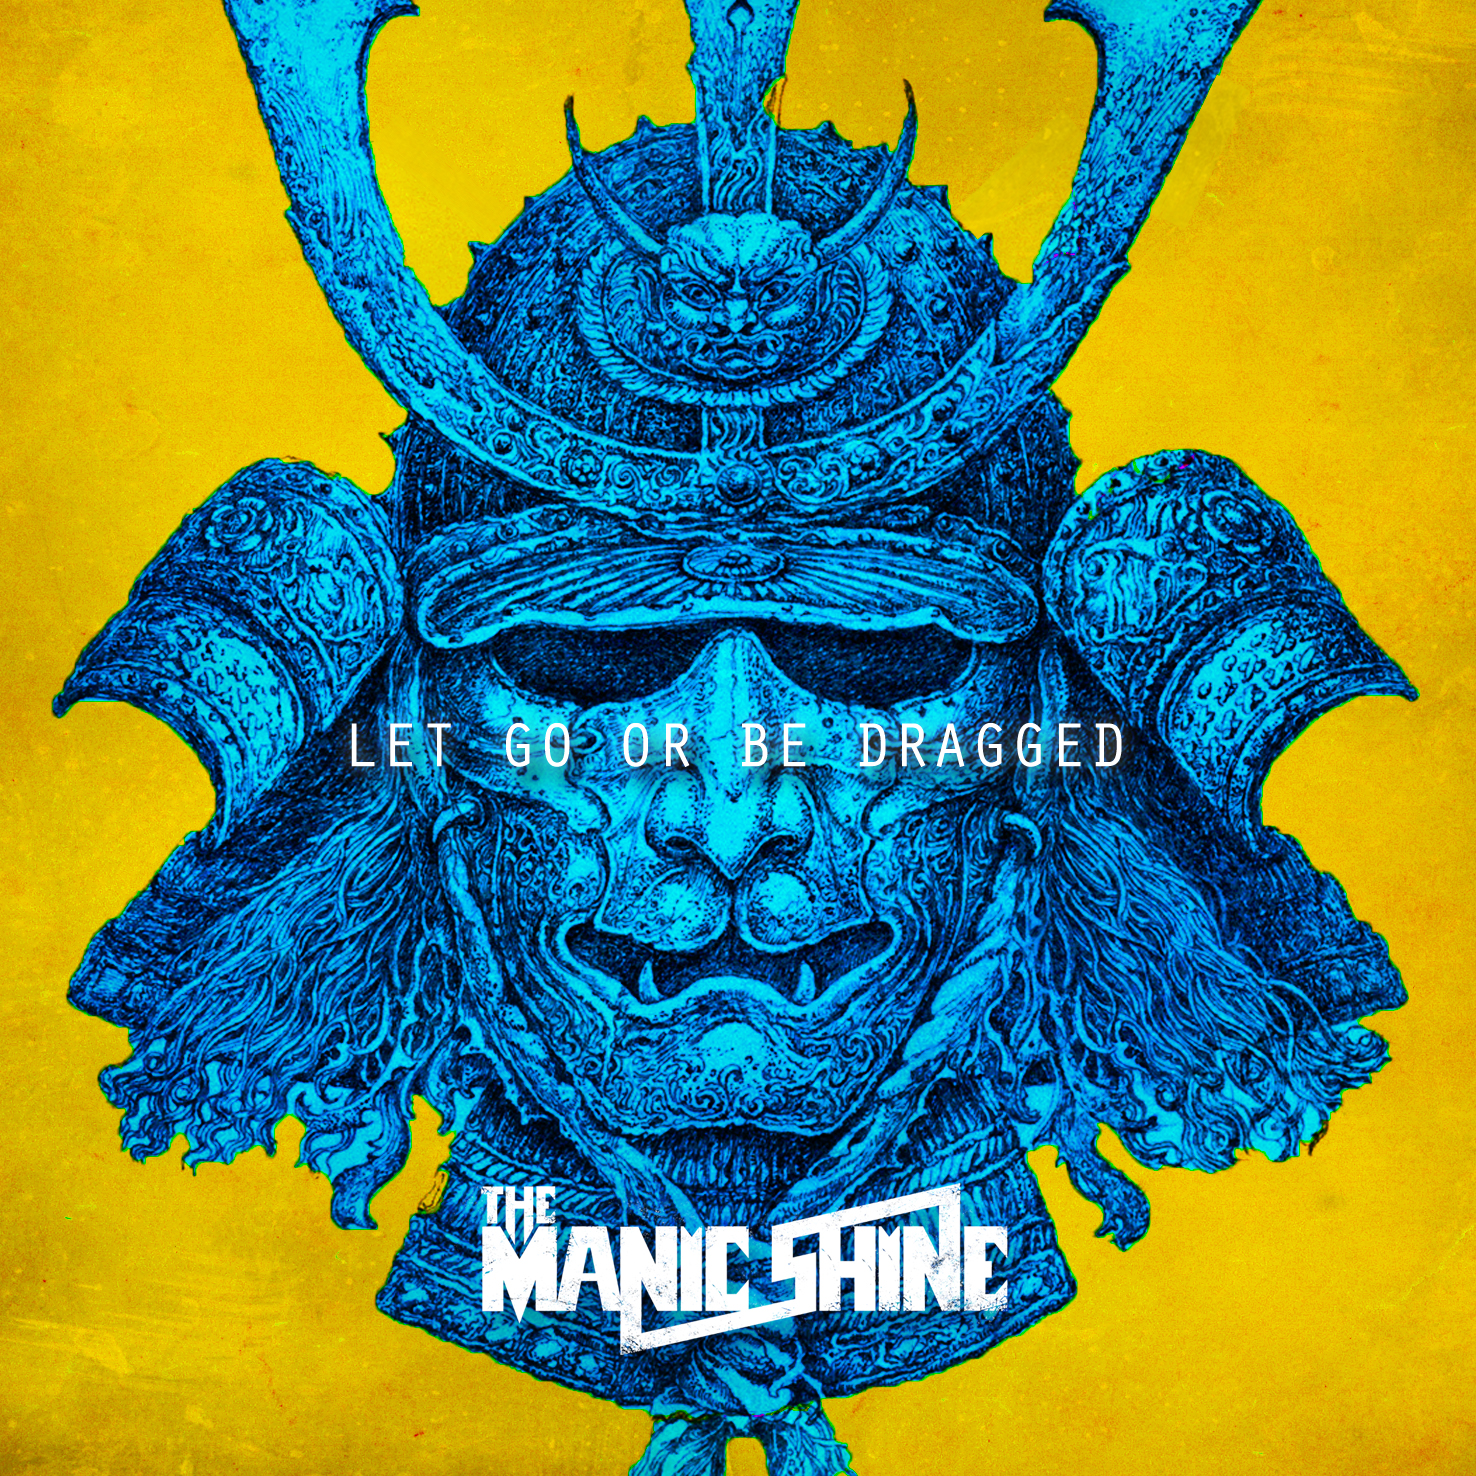 The Manic Shine - Let Go Or Be Dragged (Album)